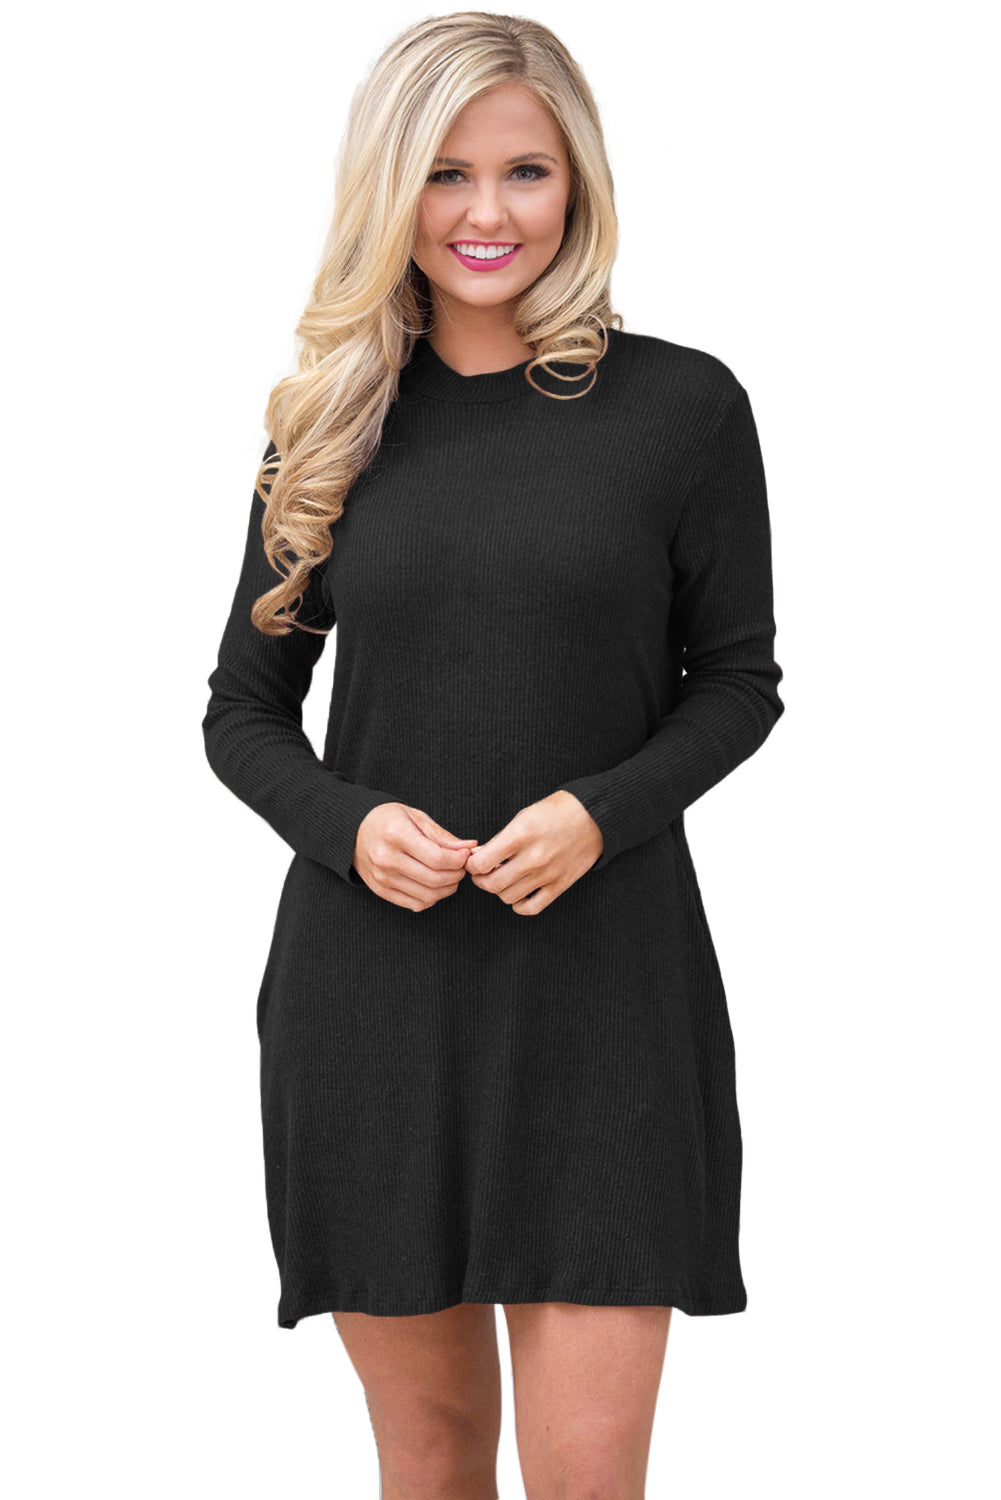 ab7fc811a8f Sexy Black High Neck Long Sleeve Knit Sweater Dress – SEXY AFFORDABLE  CLOTHING